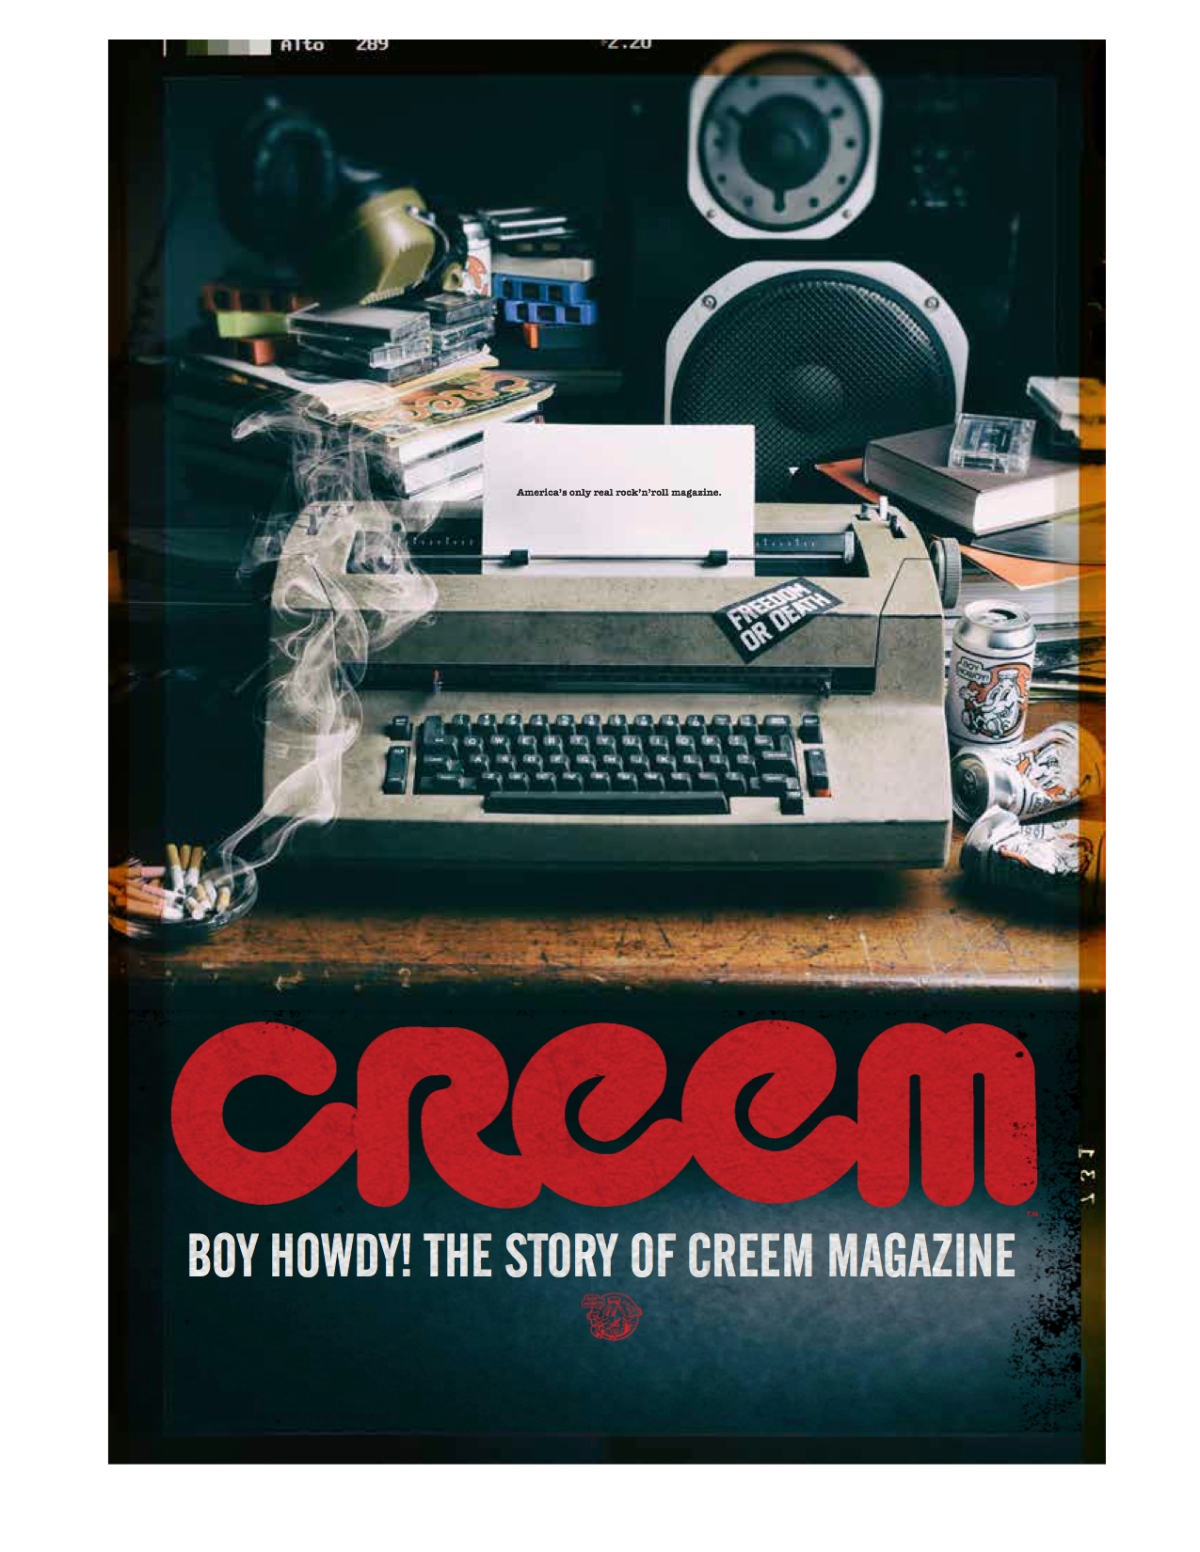 New Rose Films Announce Upcoming CREEM MagazineDocumentary